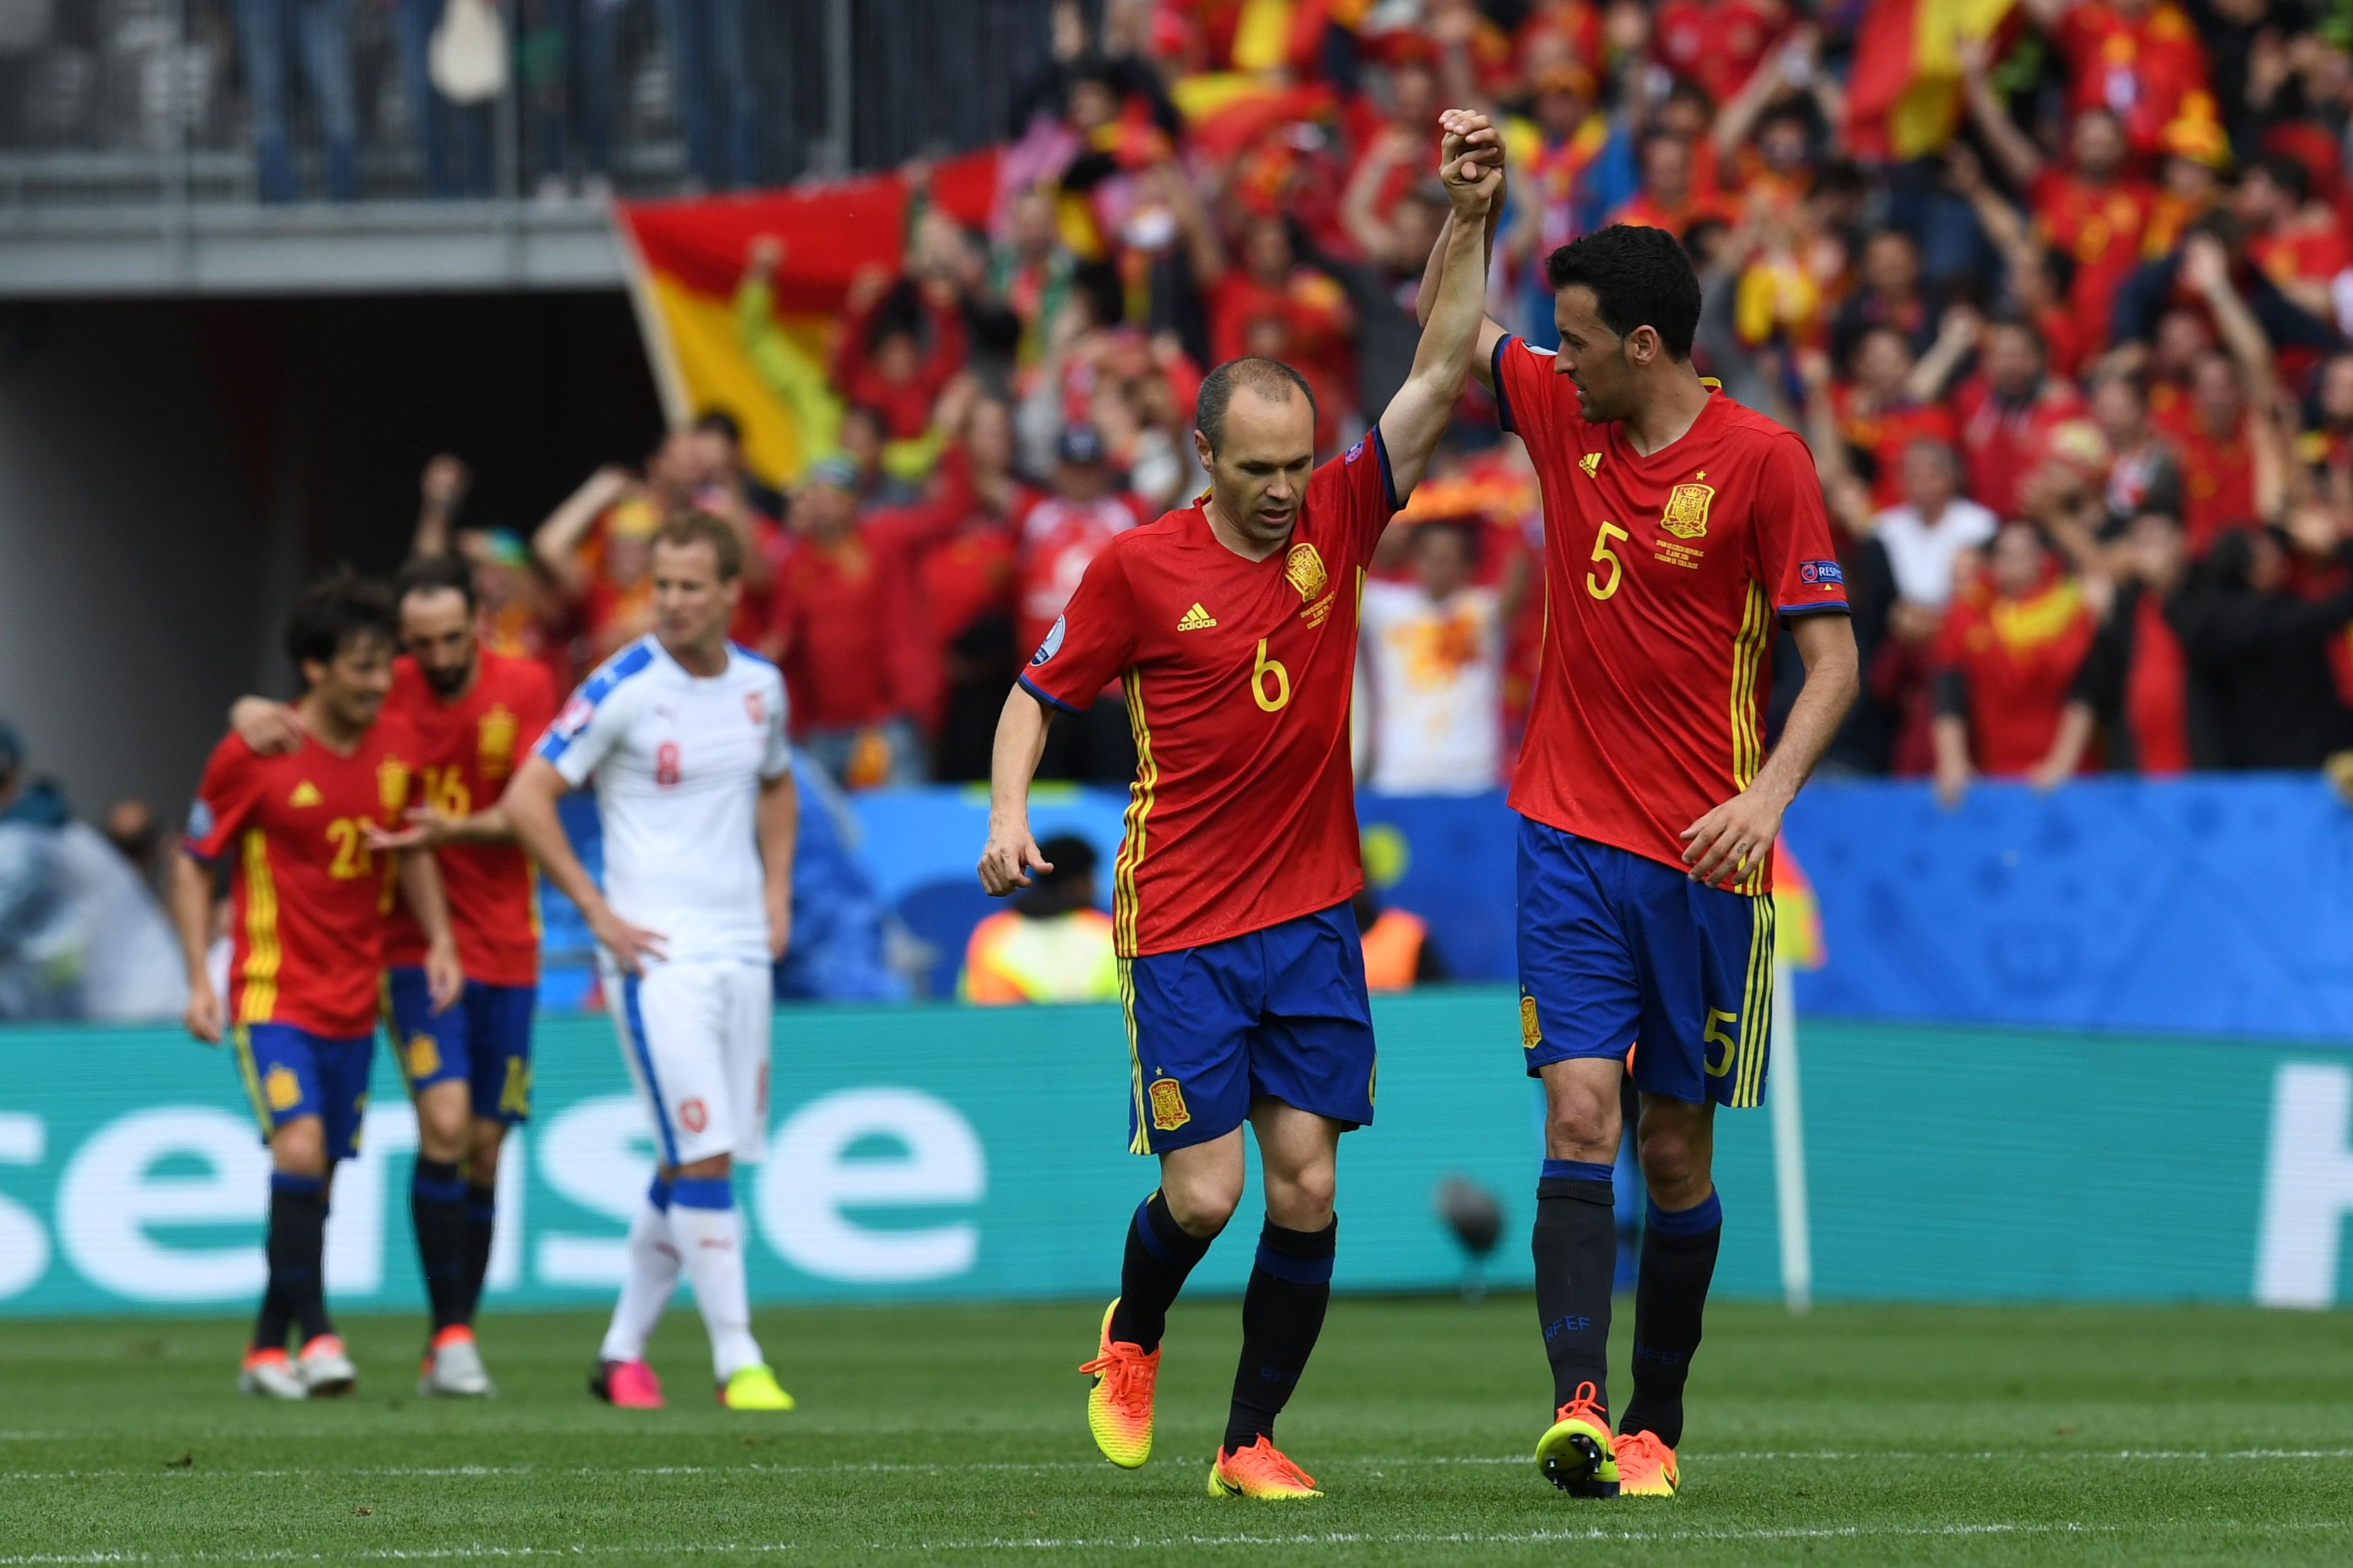 Andres Iniesta is the difference for Spain